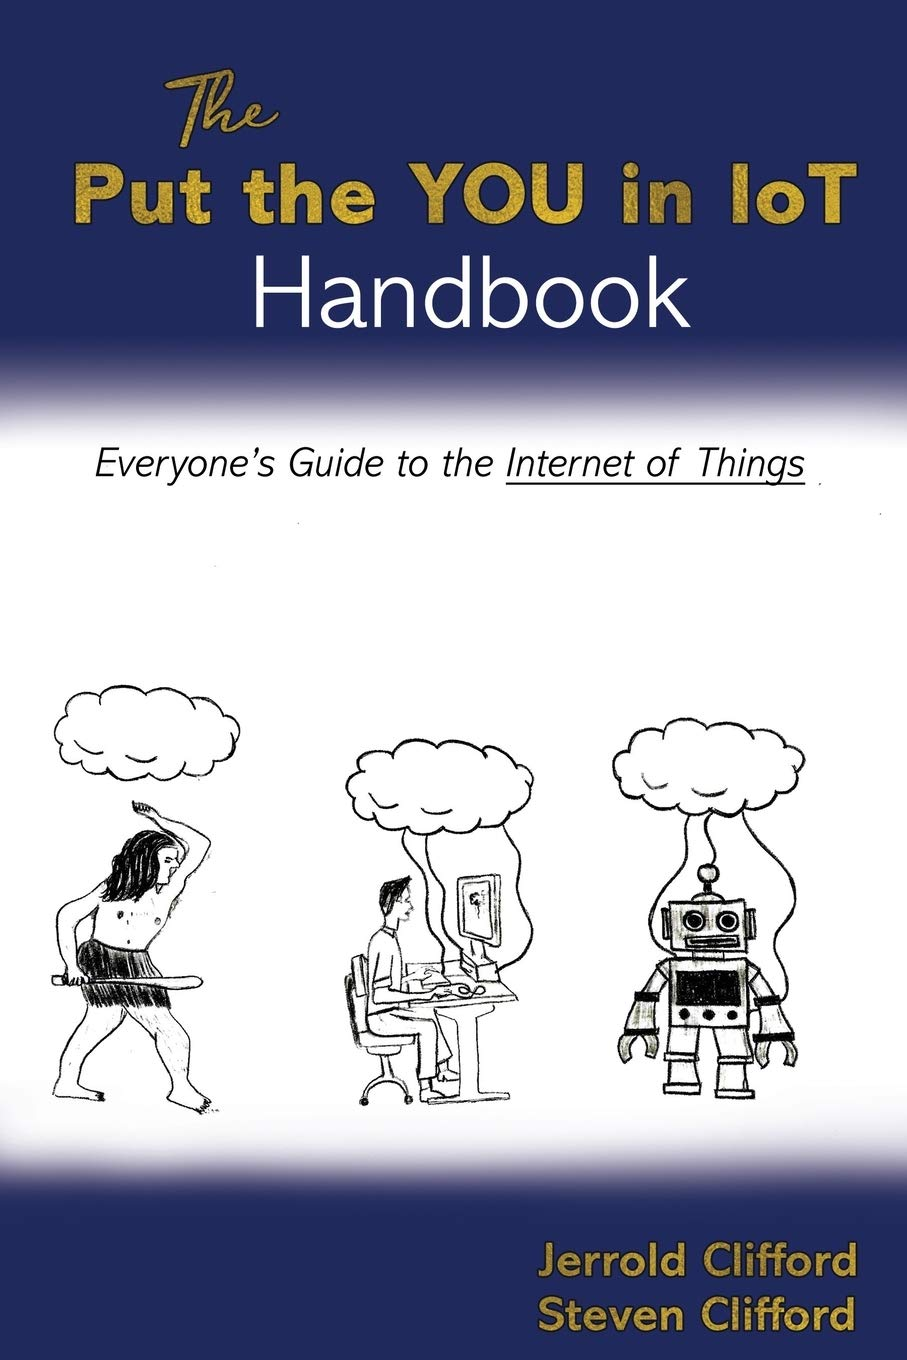 The Put the YOU in IoT Handbook: Everone's Guide to the Internet of Things